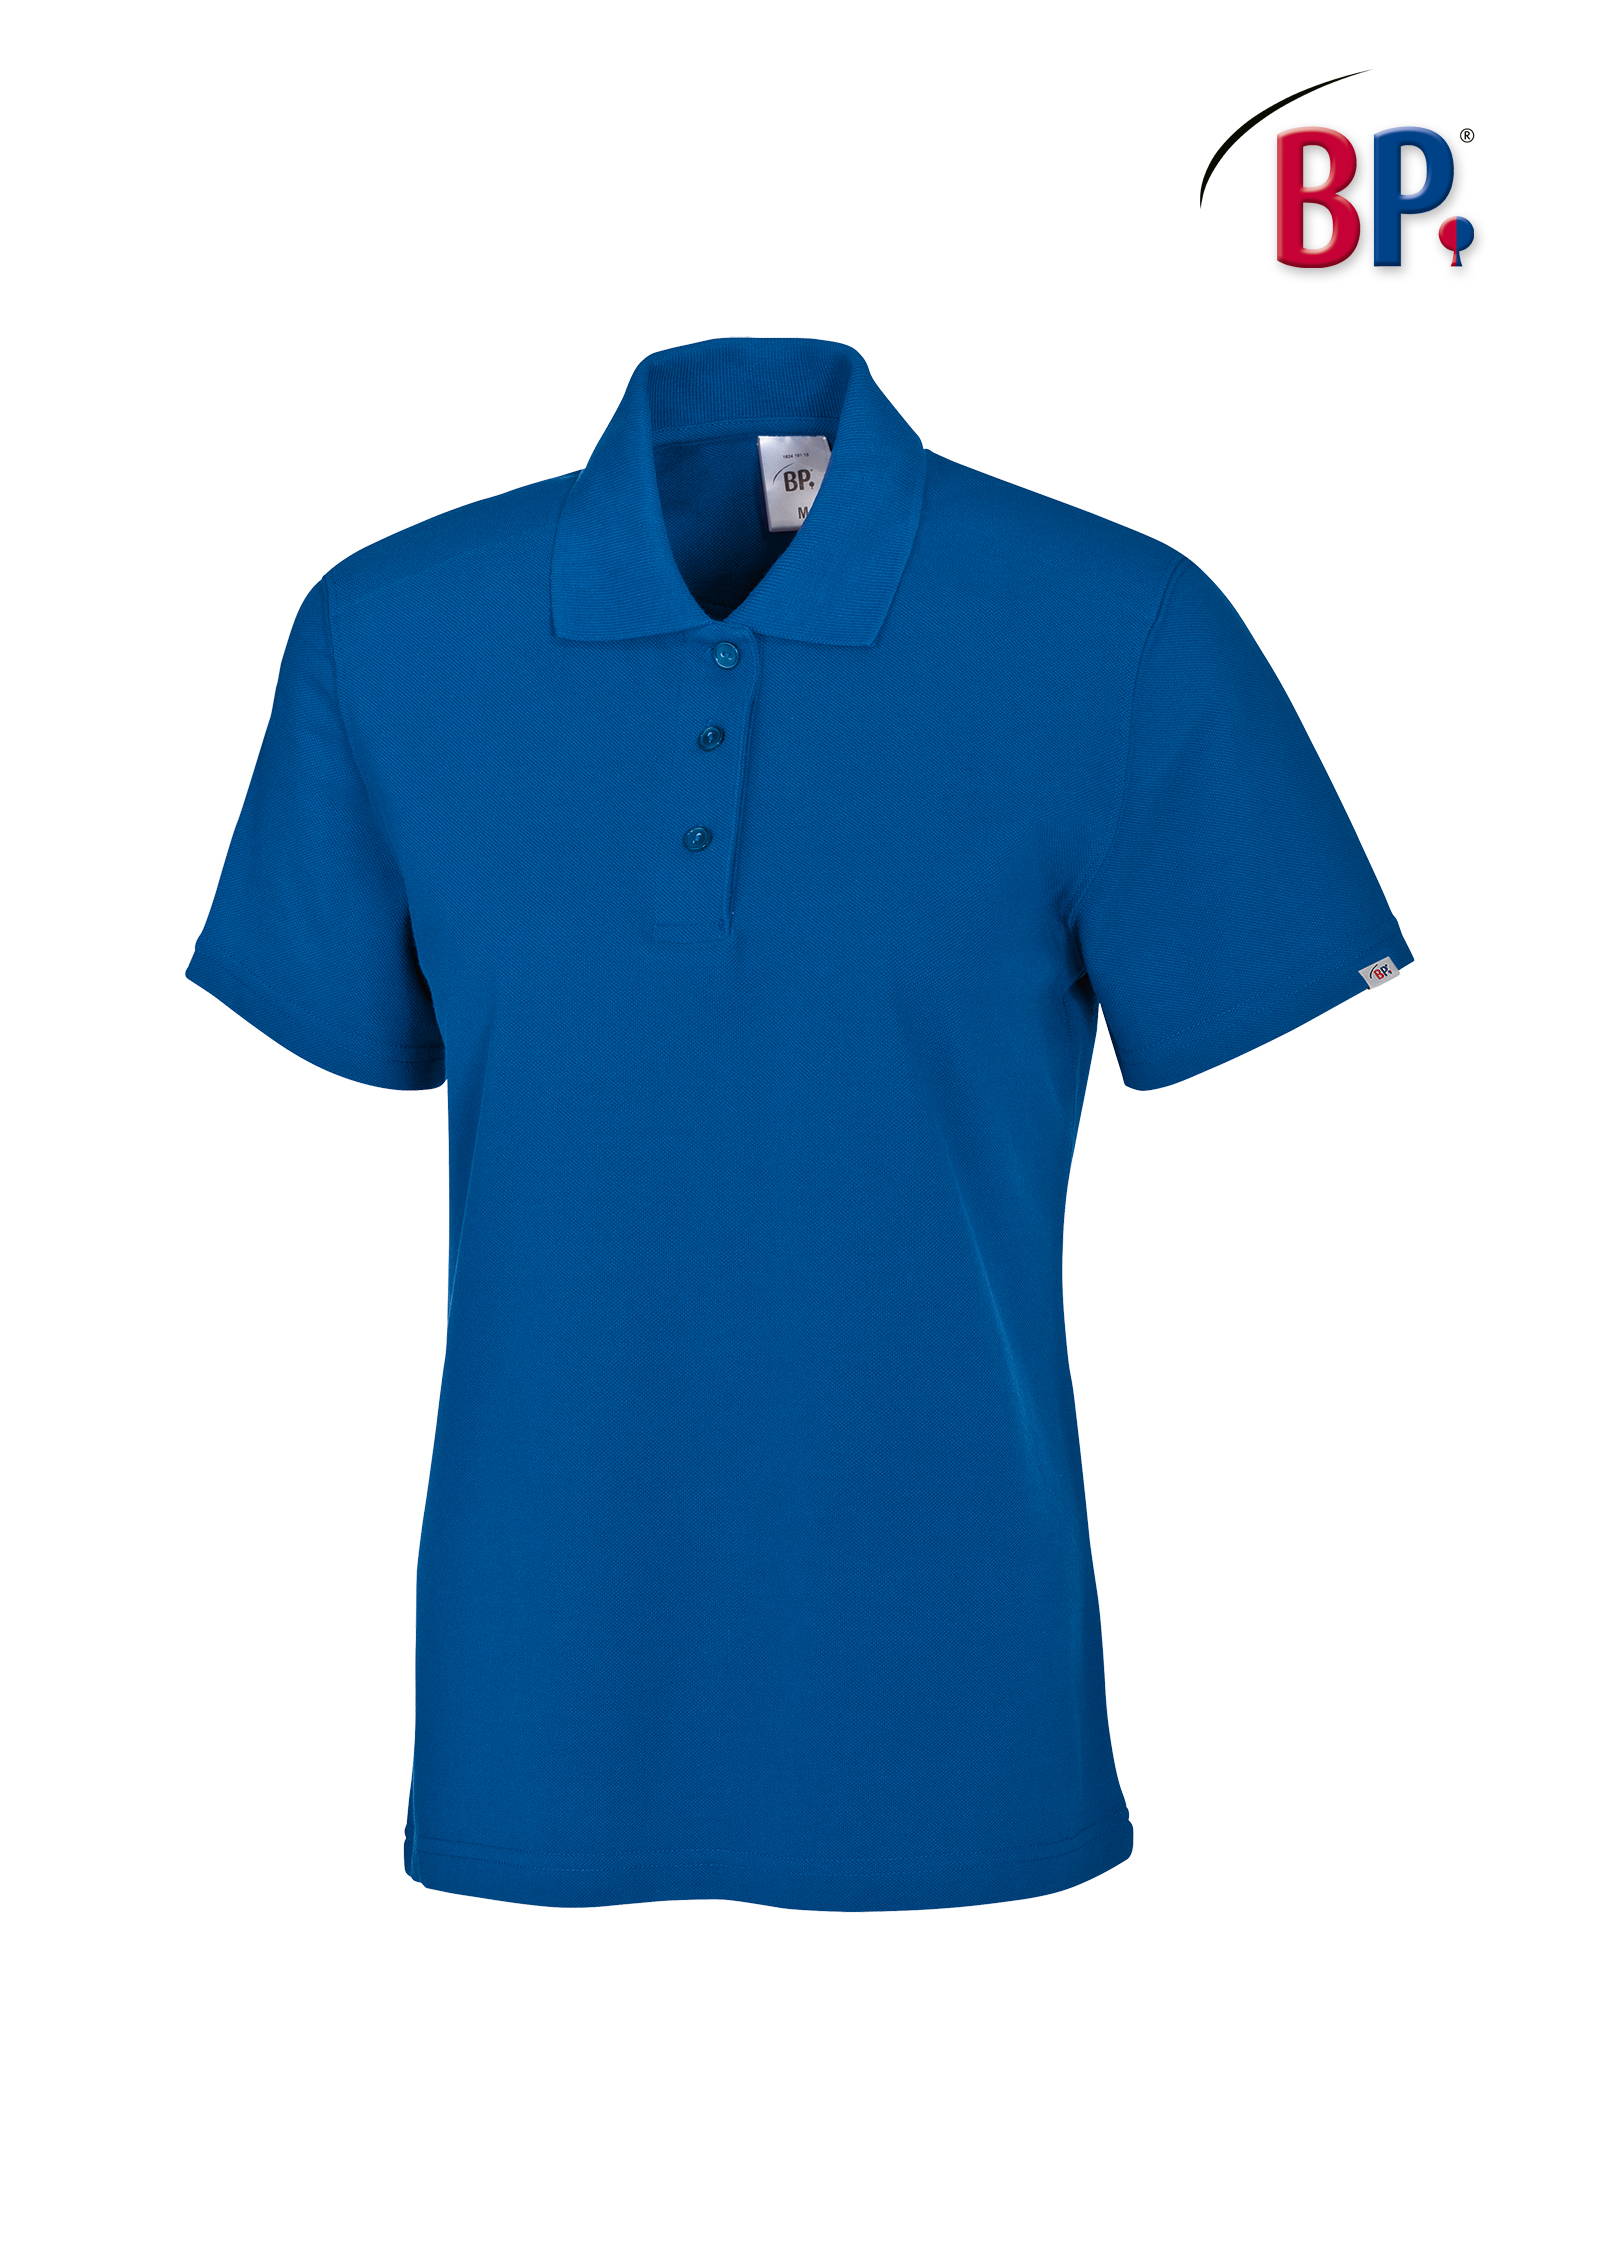 BP, Damen-Poloshirt 1648 181